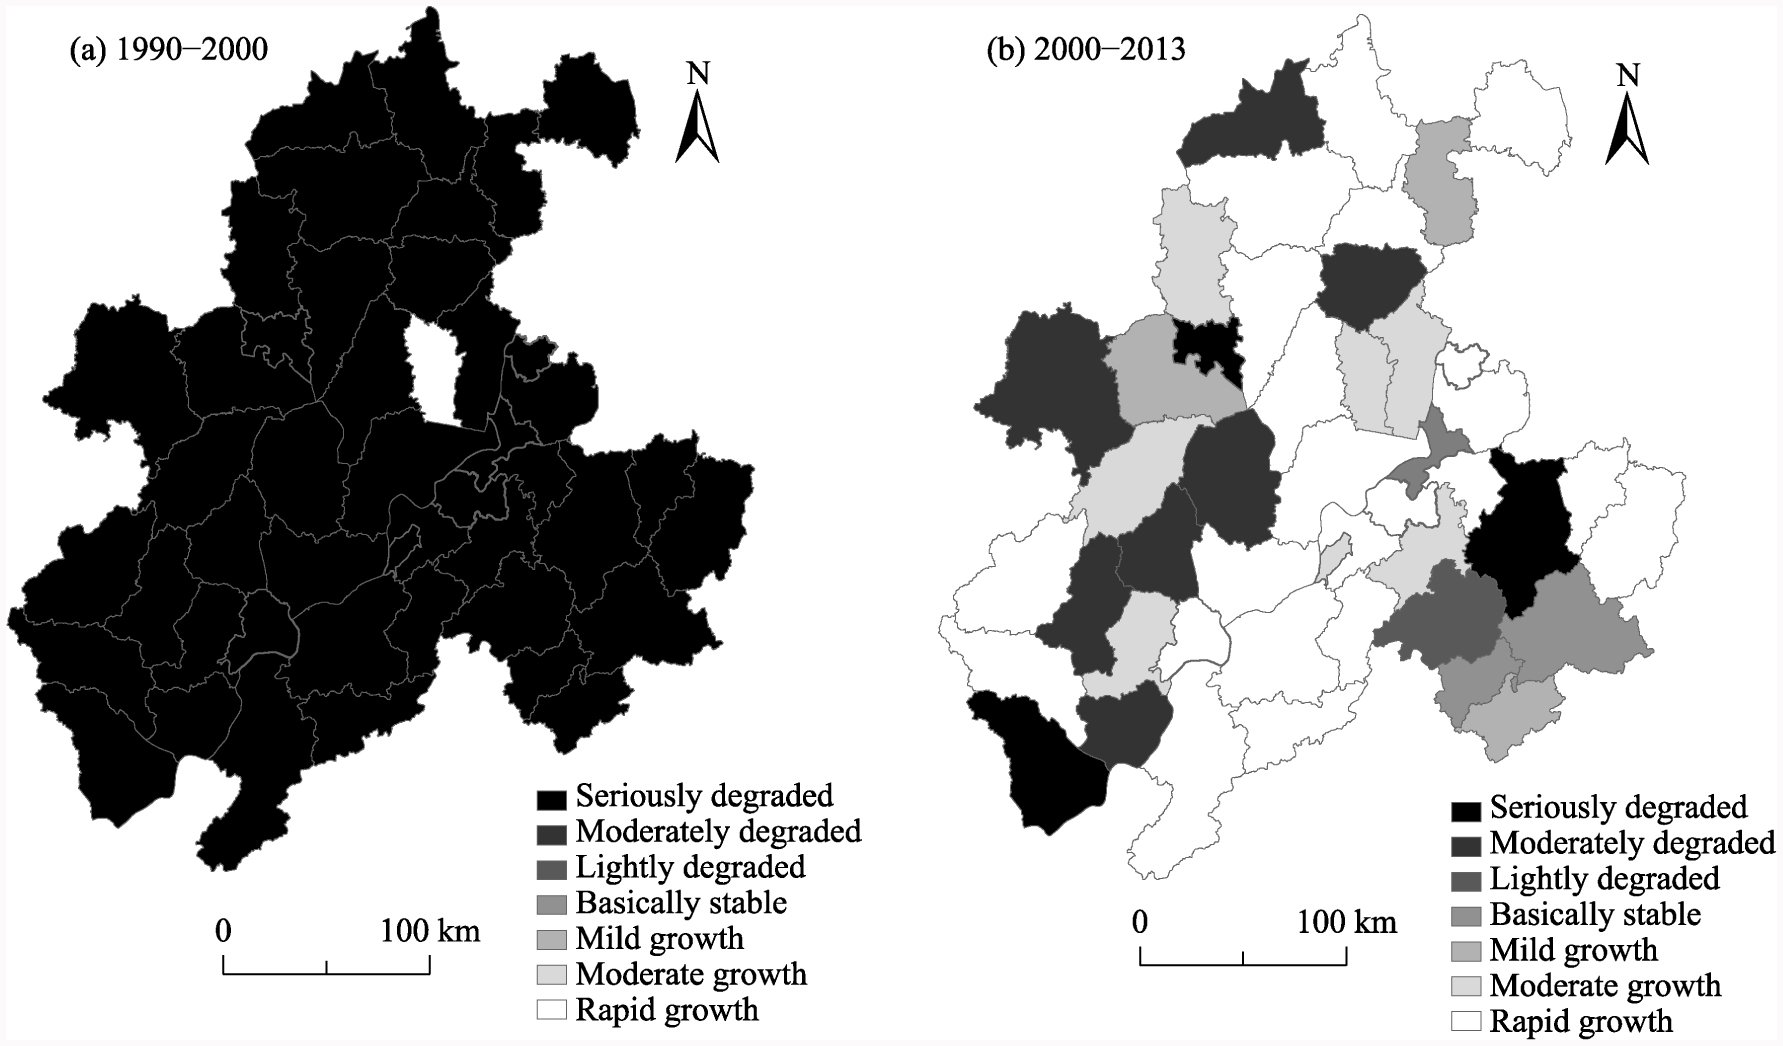 Temporal and Spatial Variations of Eco-asset Patterns and